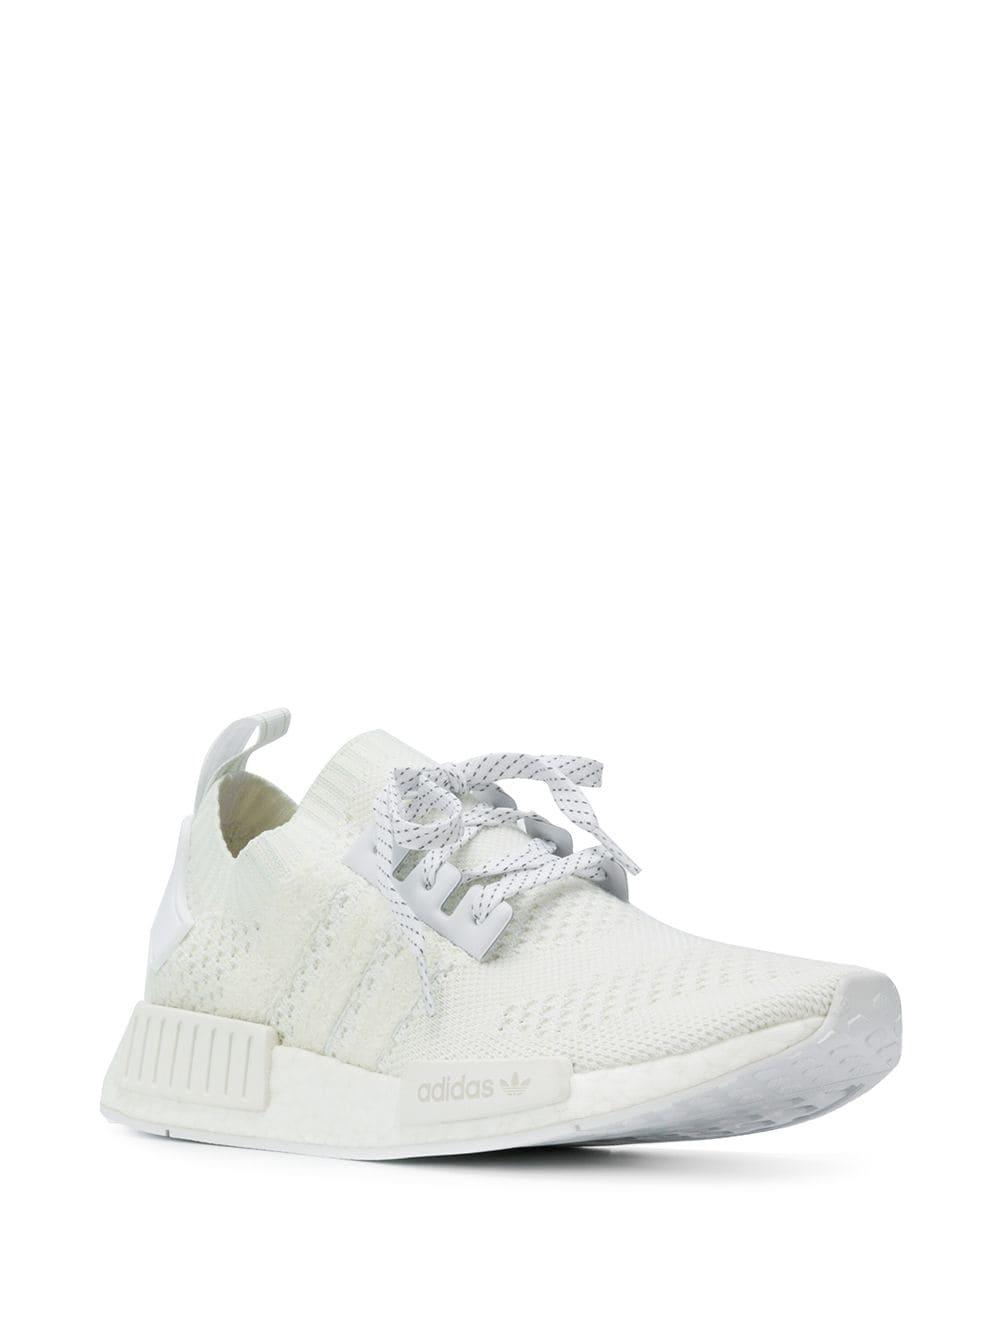 0a9538b869d71 Lyst - adidas Nmd R1 Sneakers in White for Men